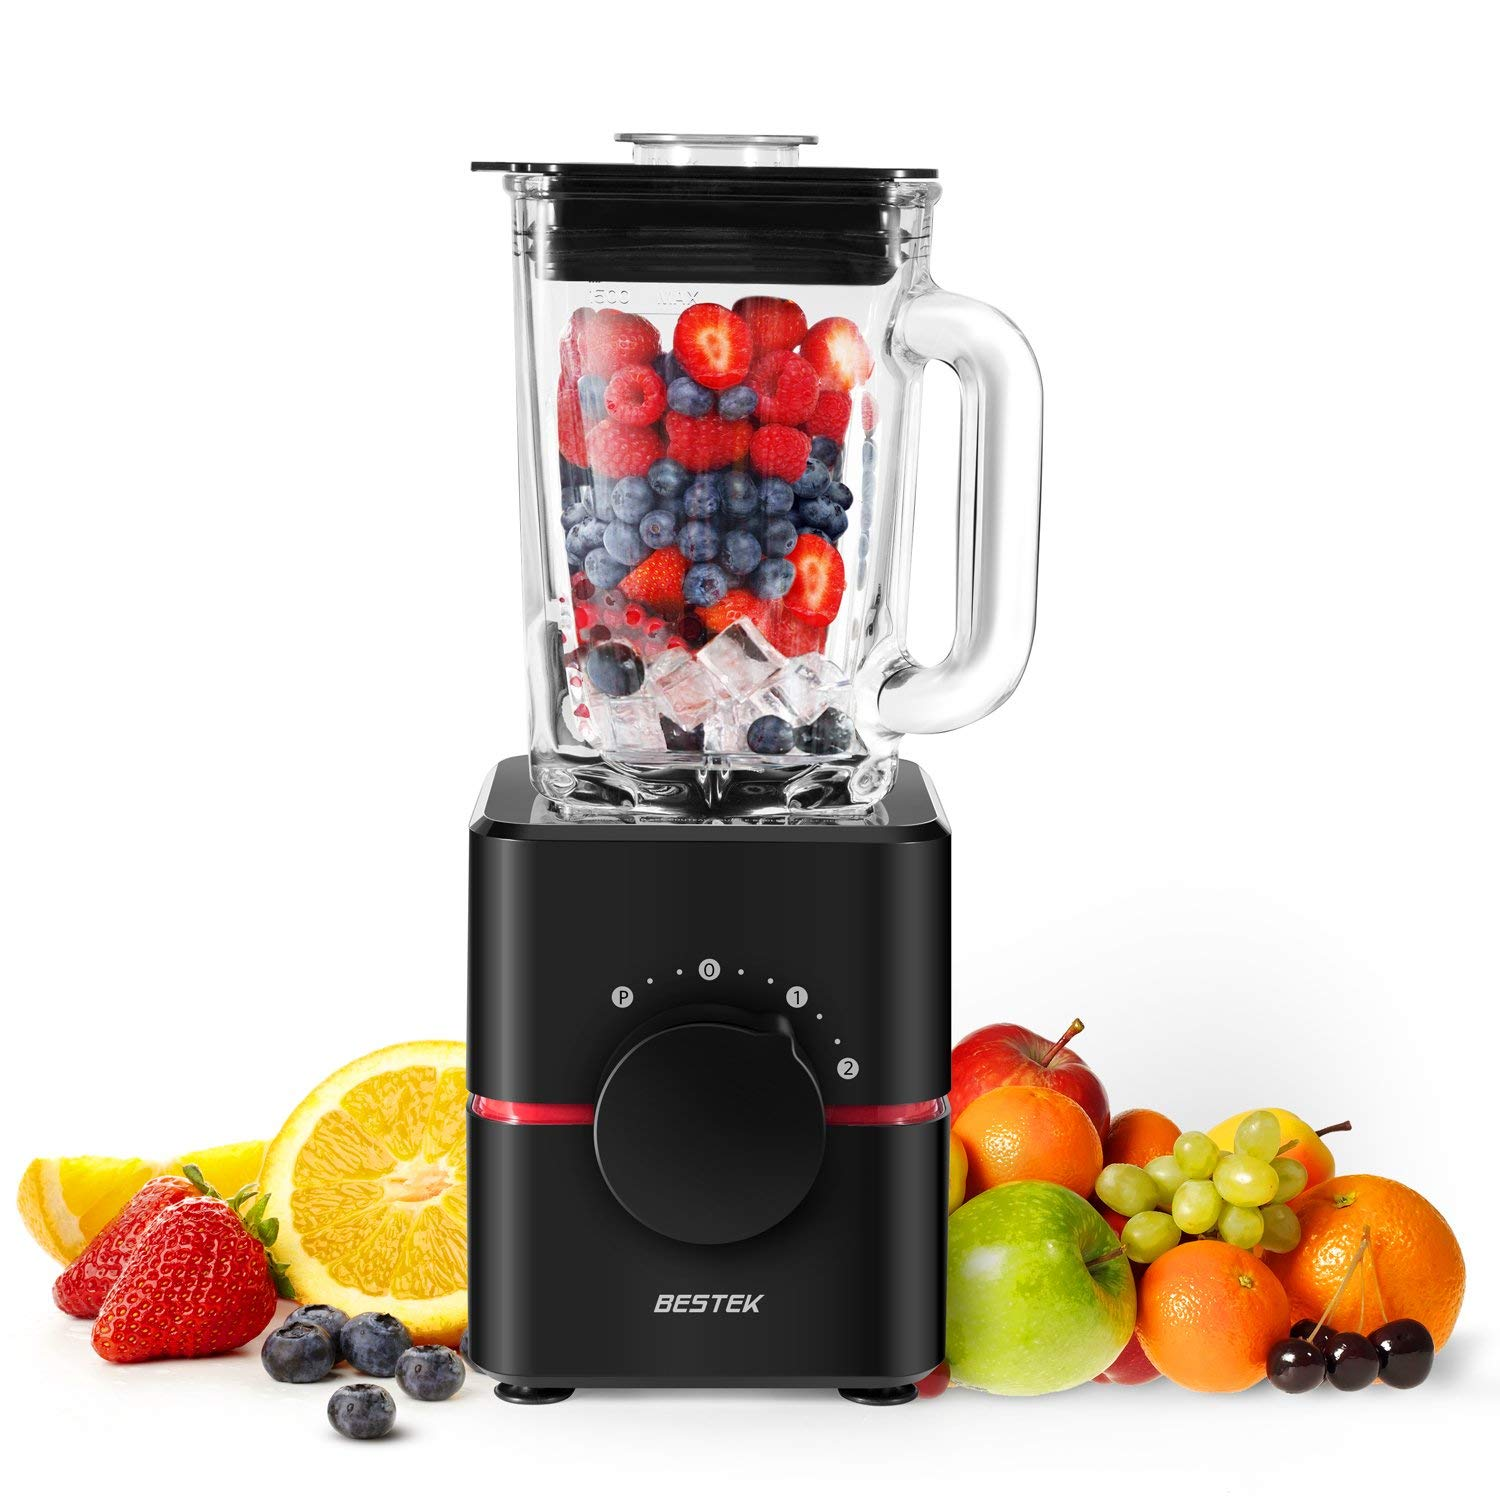 Electric Glass Blender, Professional Food Processor – 62% off on Amazon! Just $19